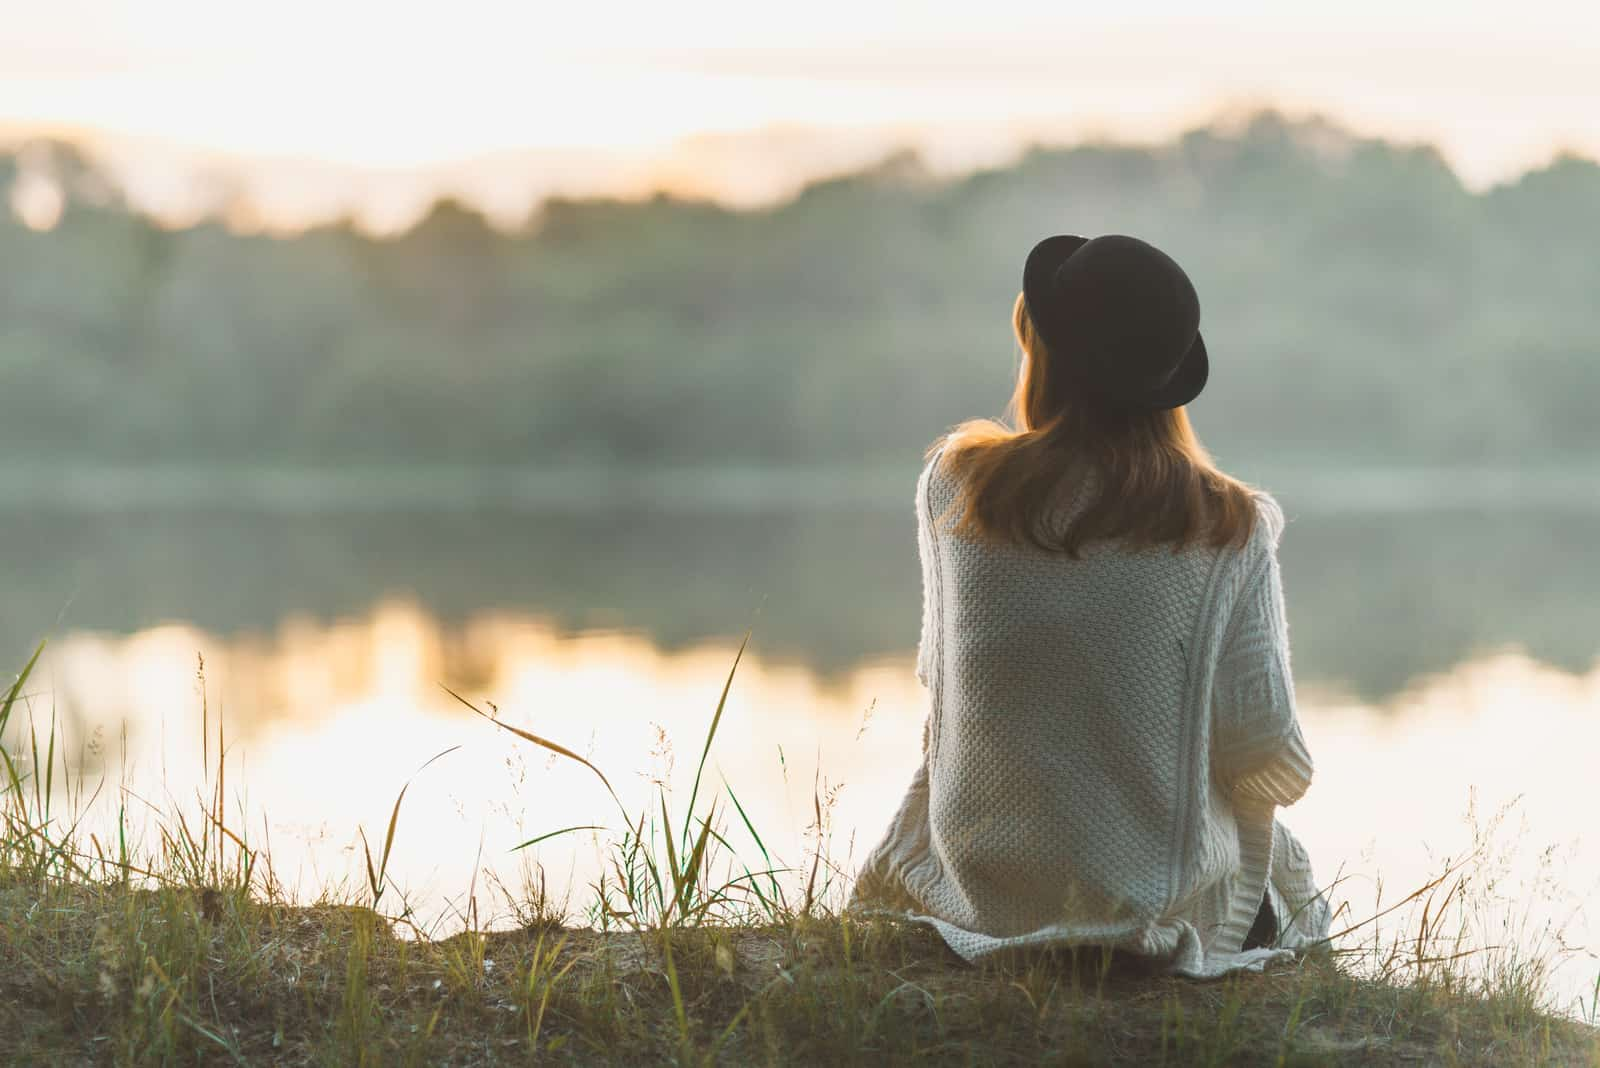 a woman with a hat on her head sits on the grass and looks out at the lake